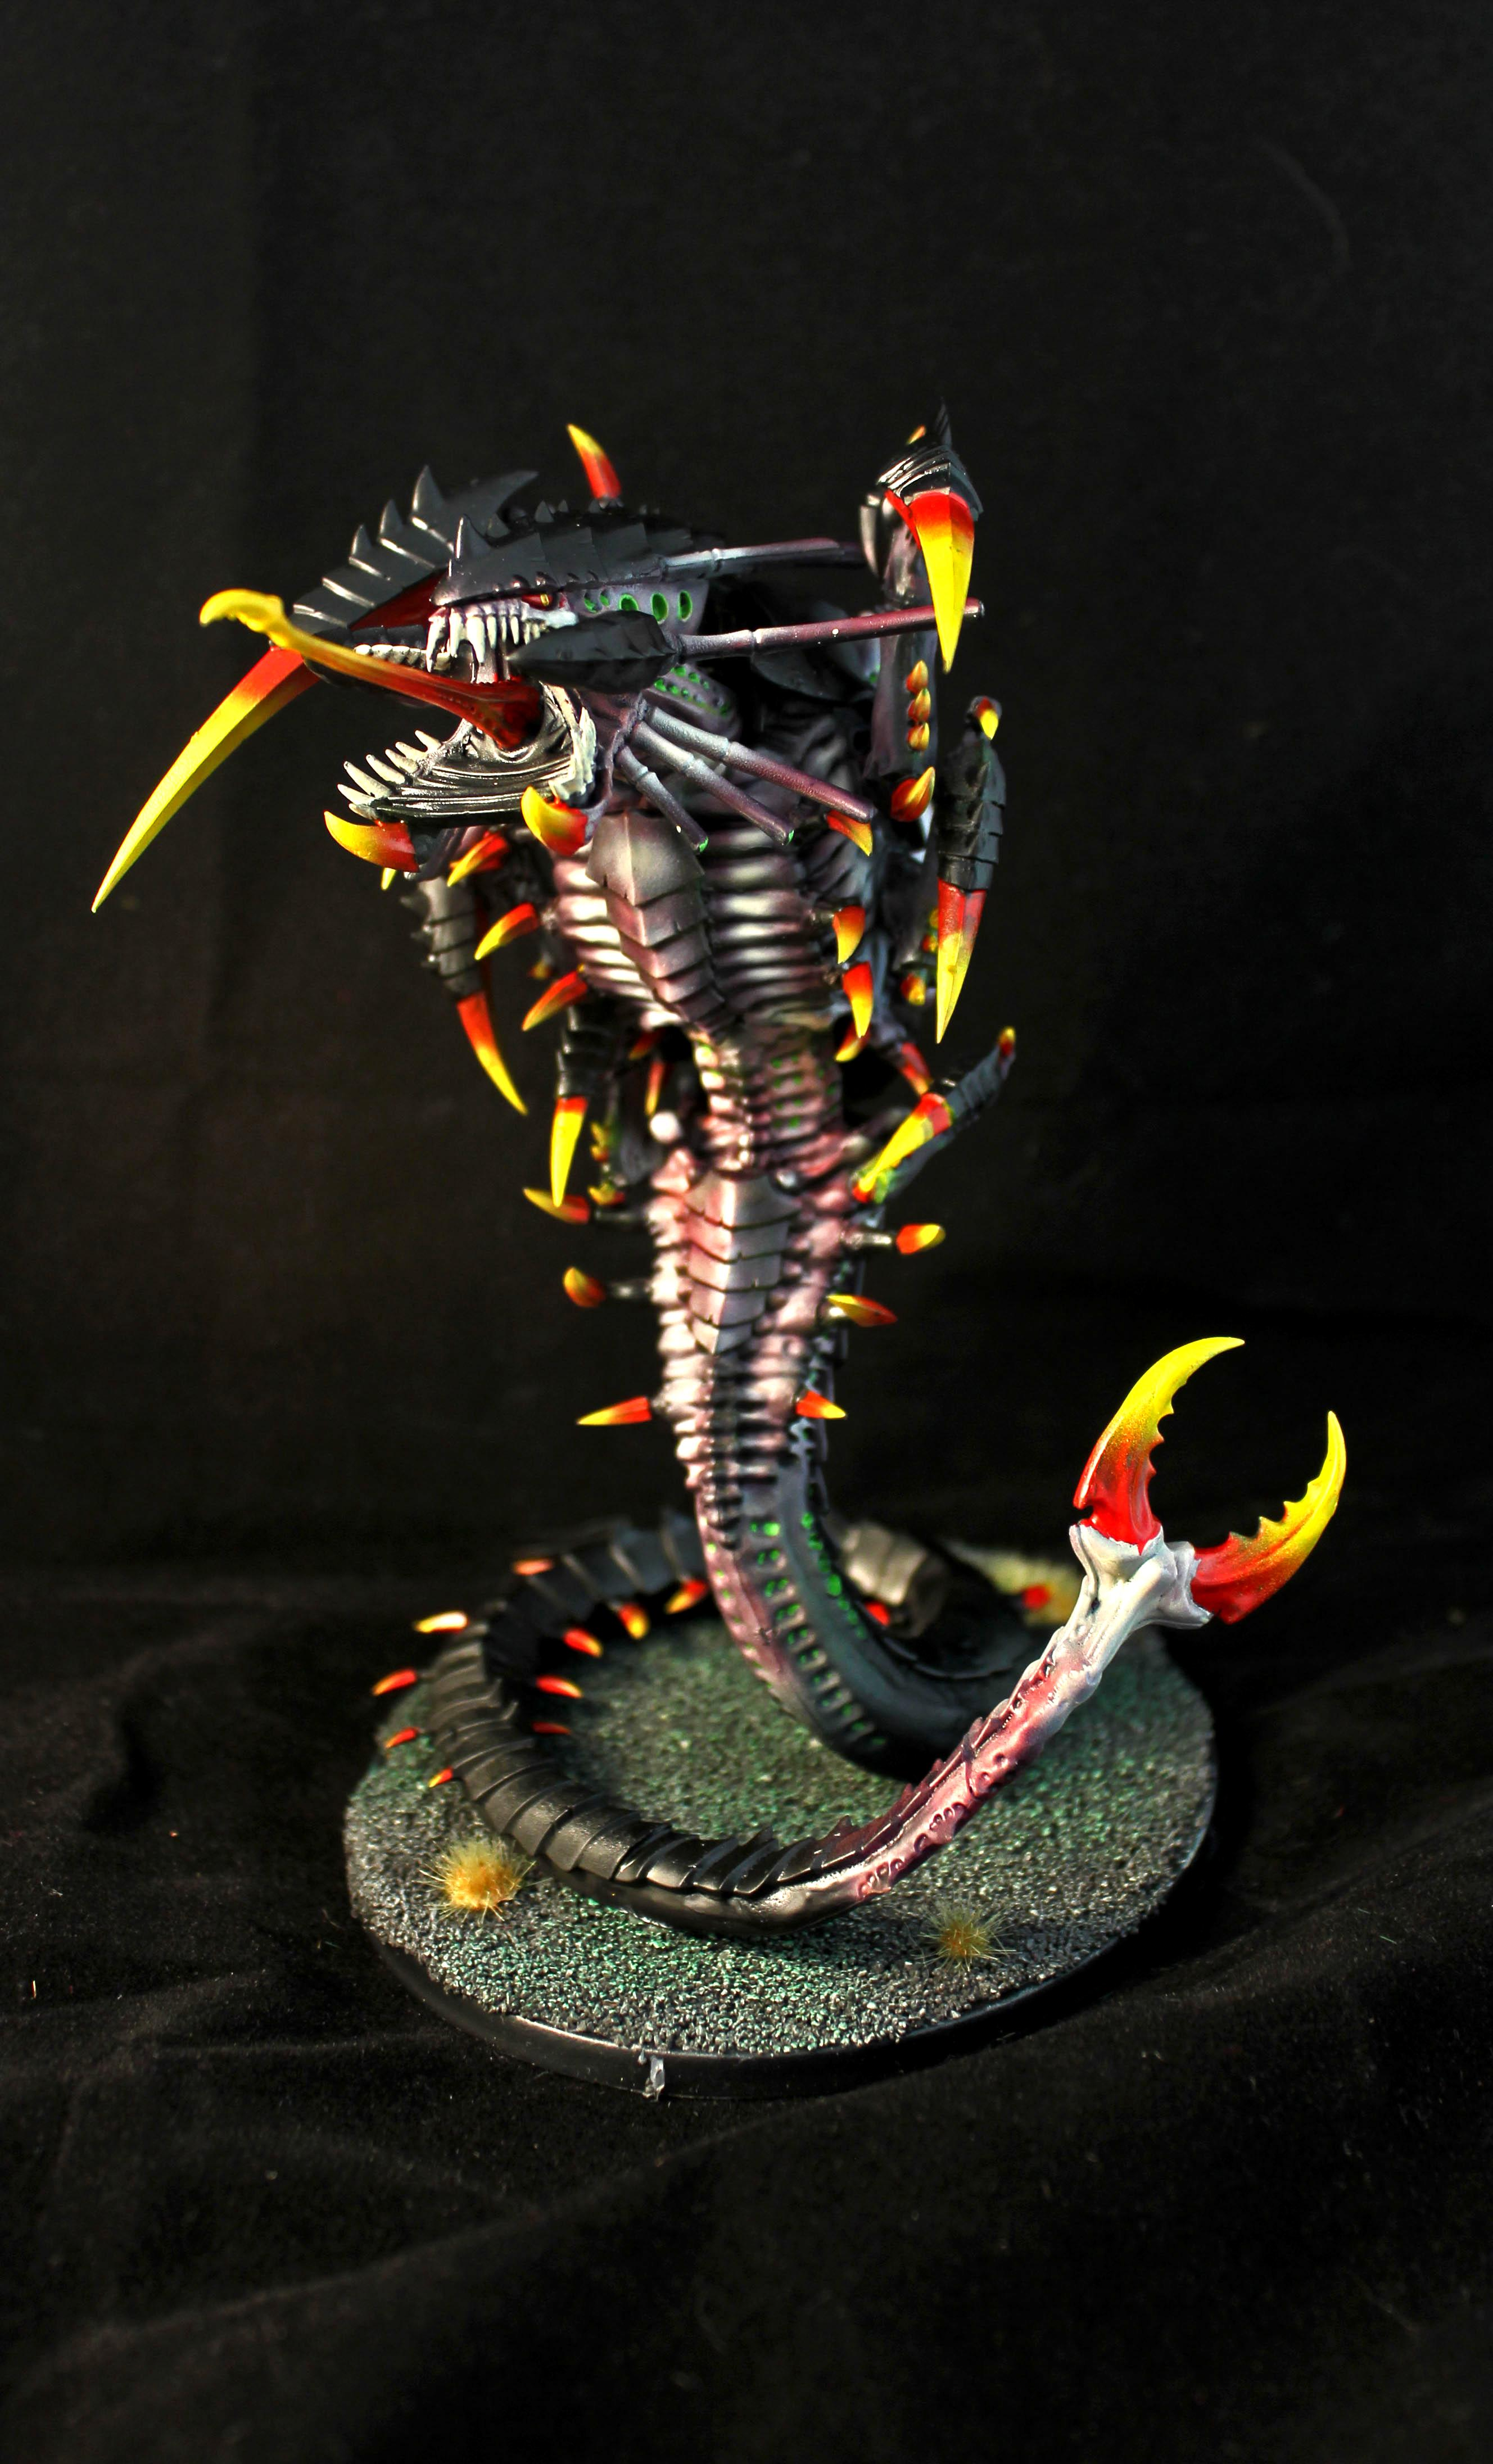 Another Tyranid Done, But Still Fun To Do, This One Was A Commission Instead Of Keeping For Personal Use